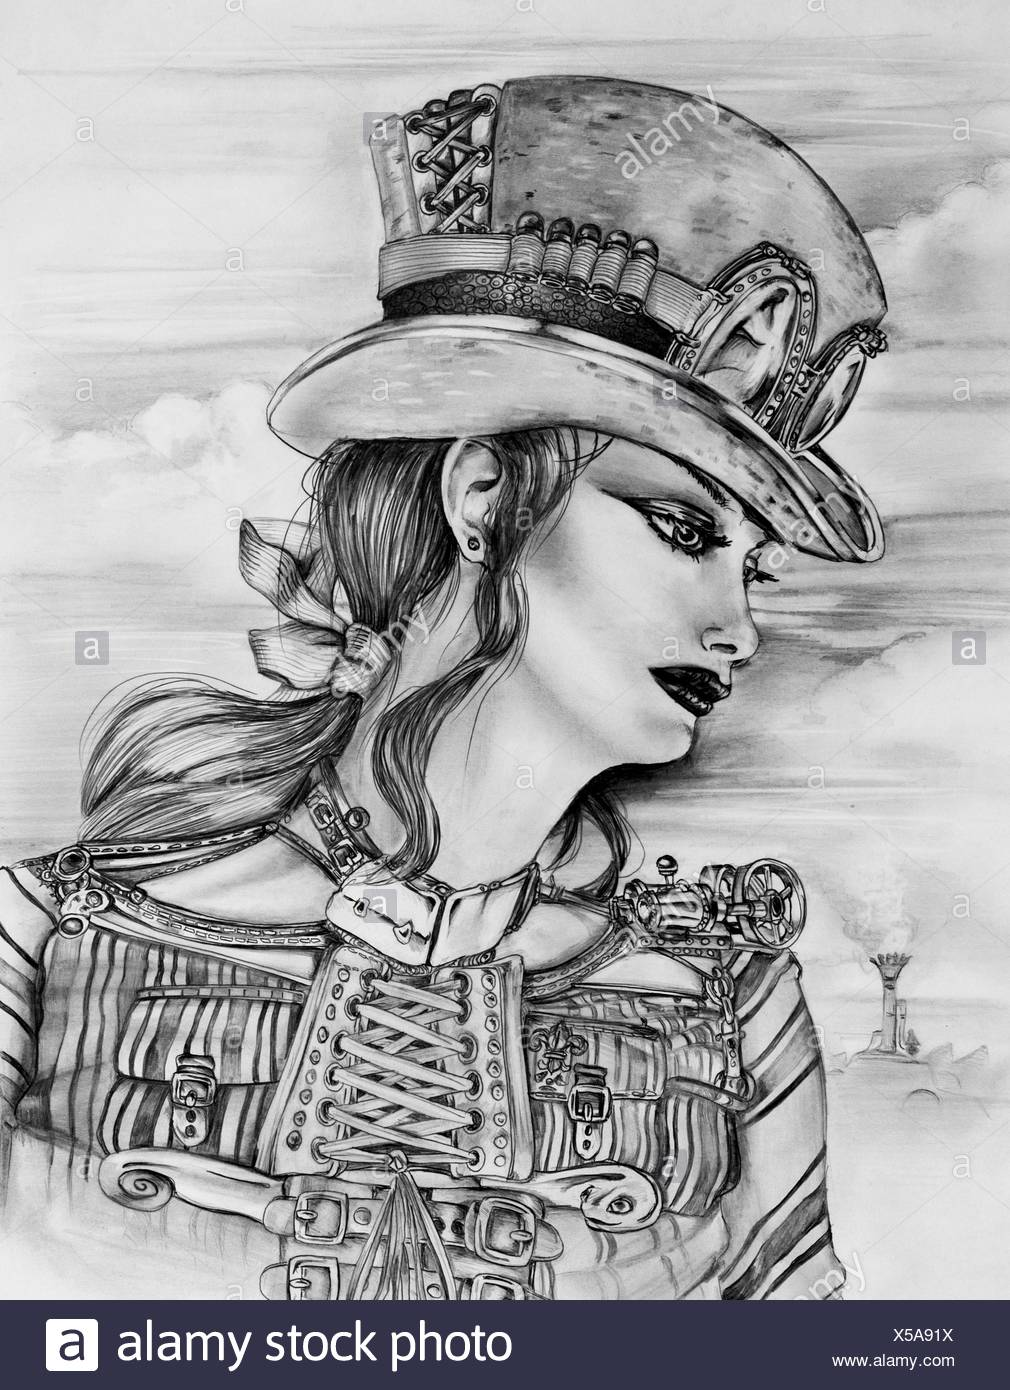 Original pencil sketch drawn by myself of a steampunk woman in a customized top hat